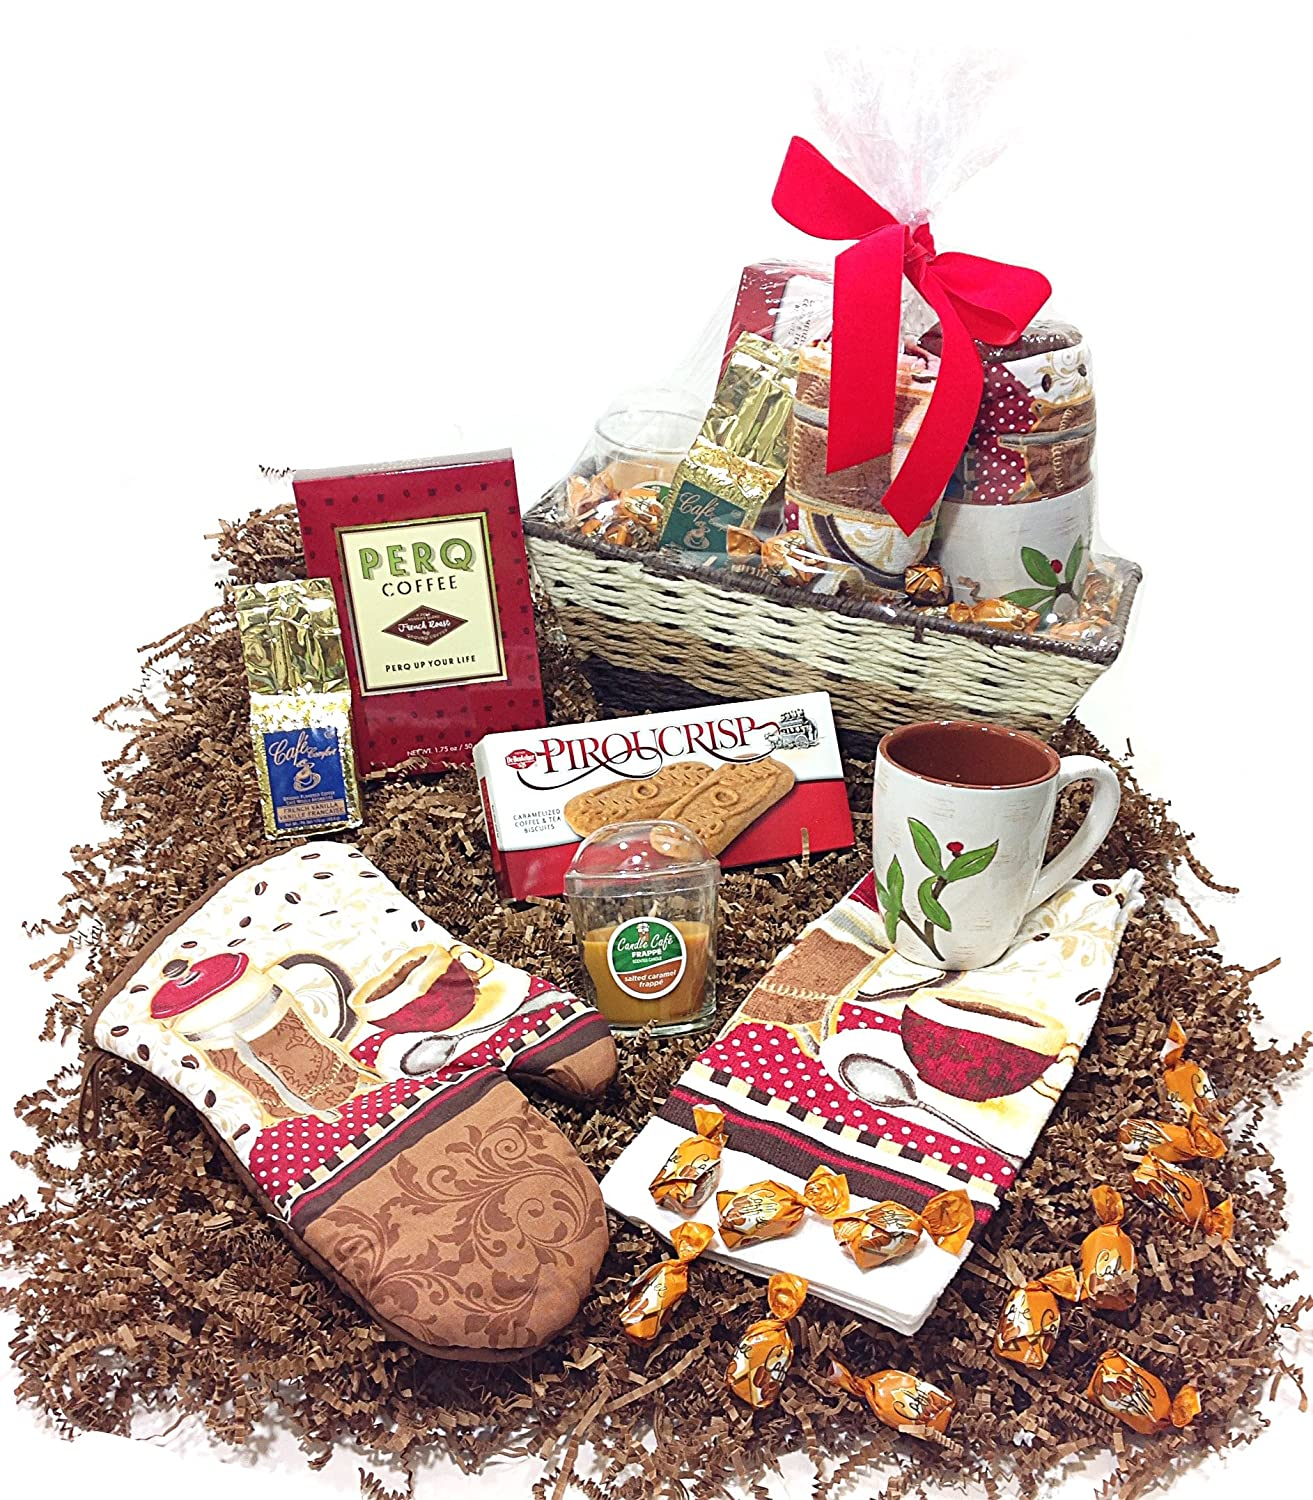 Amazon.com : Coffee Lovers Gift Basket - Mug, Coffees, Candle, Towel, Potholder, Caramel Biscuits & Candy : Grocery & Gourmet Food